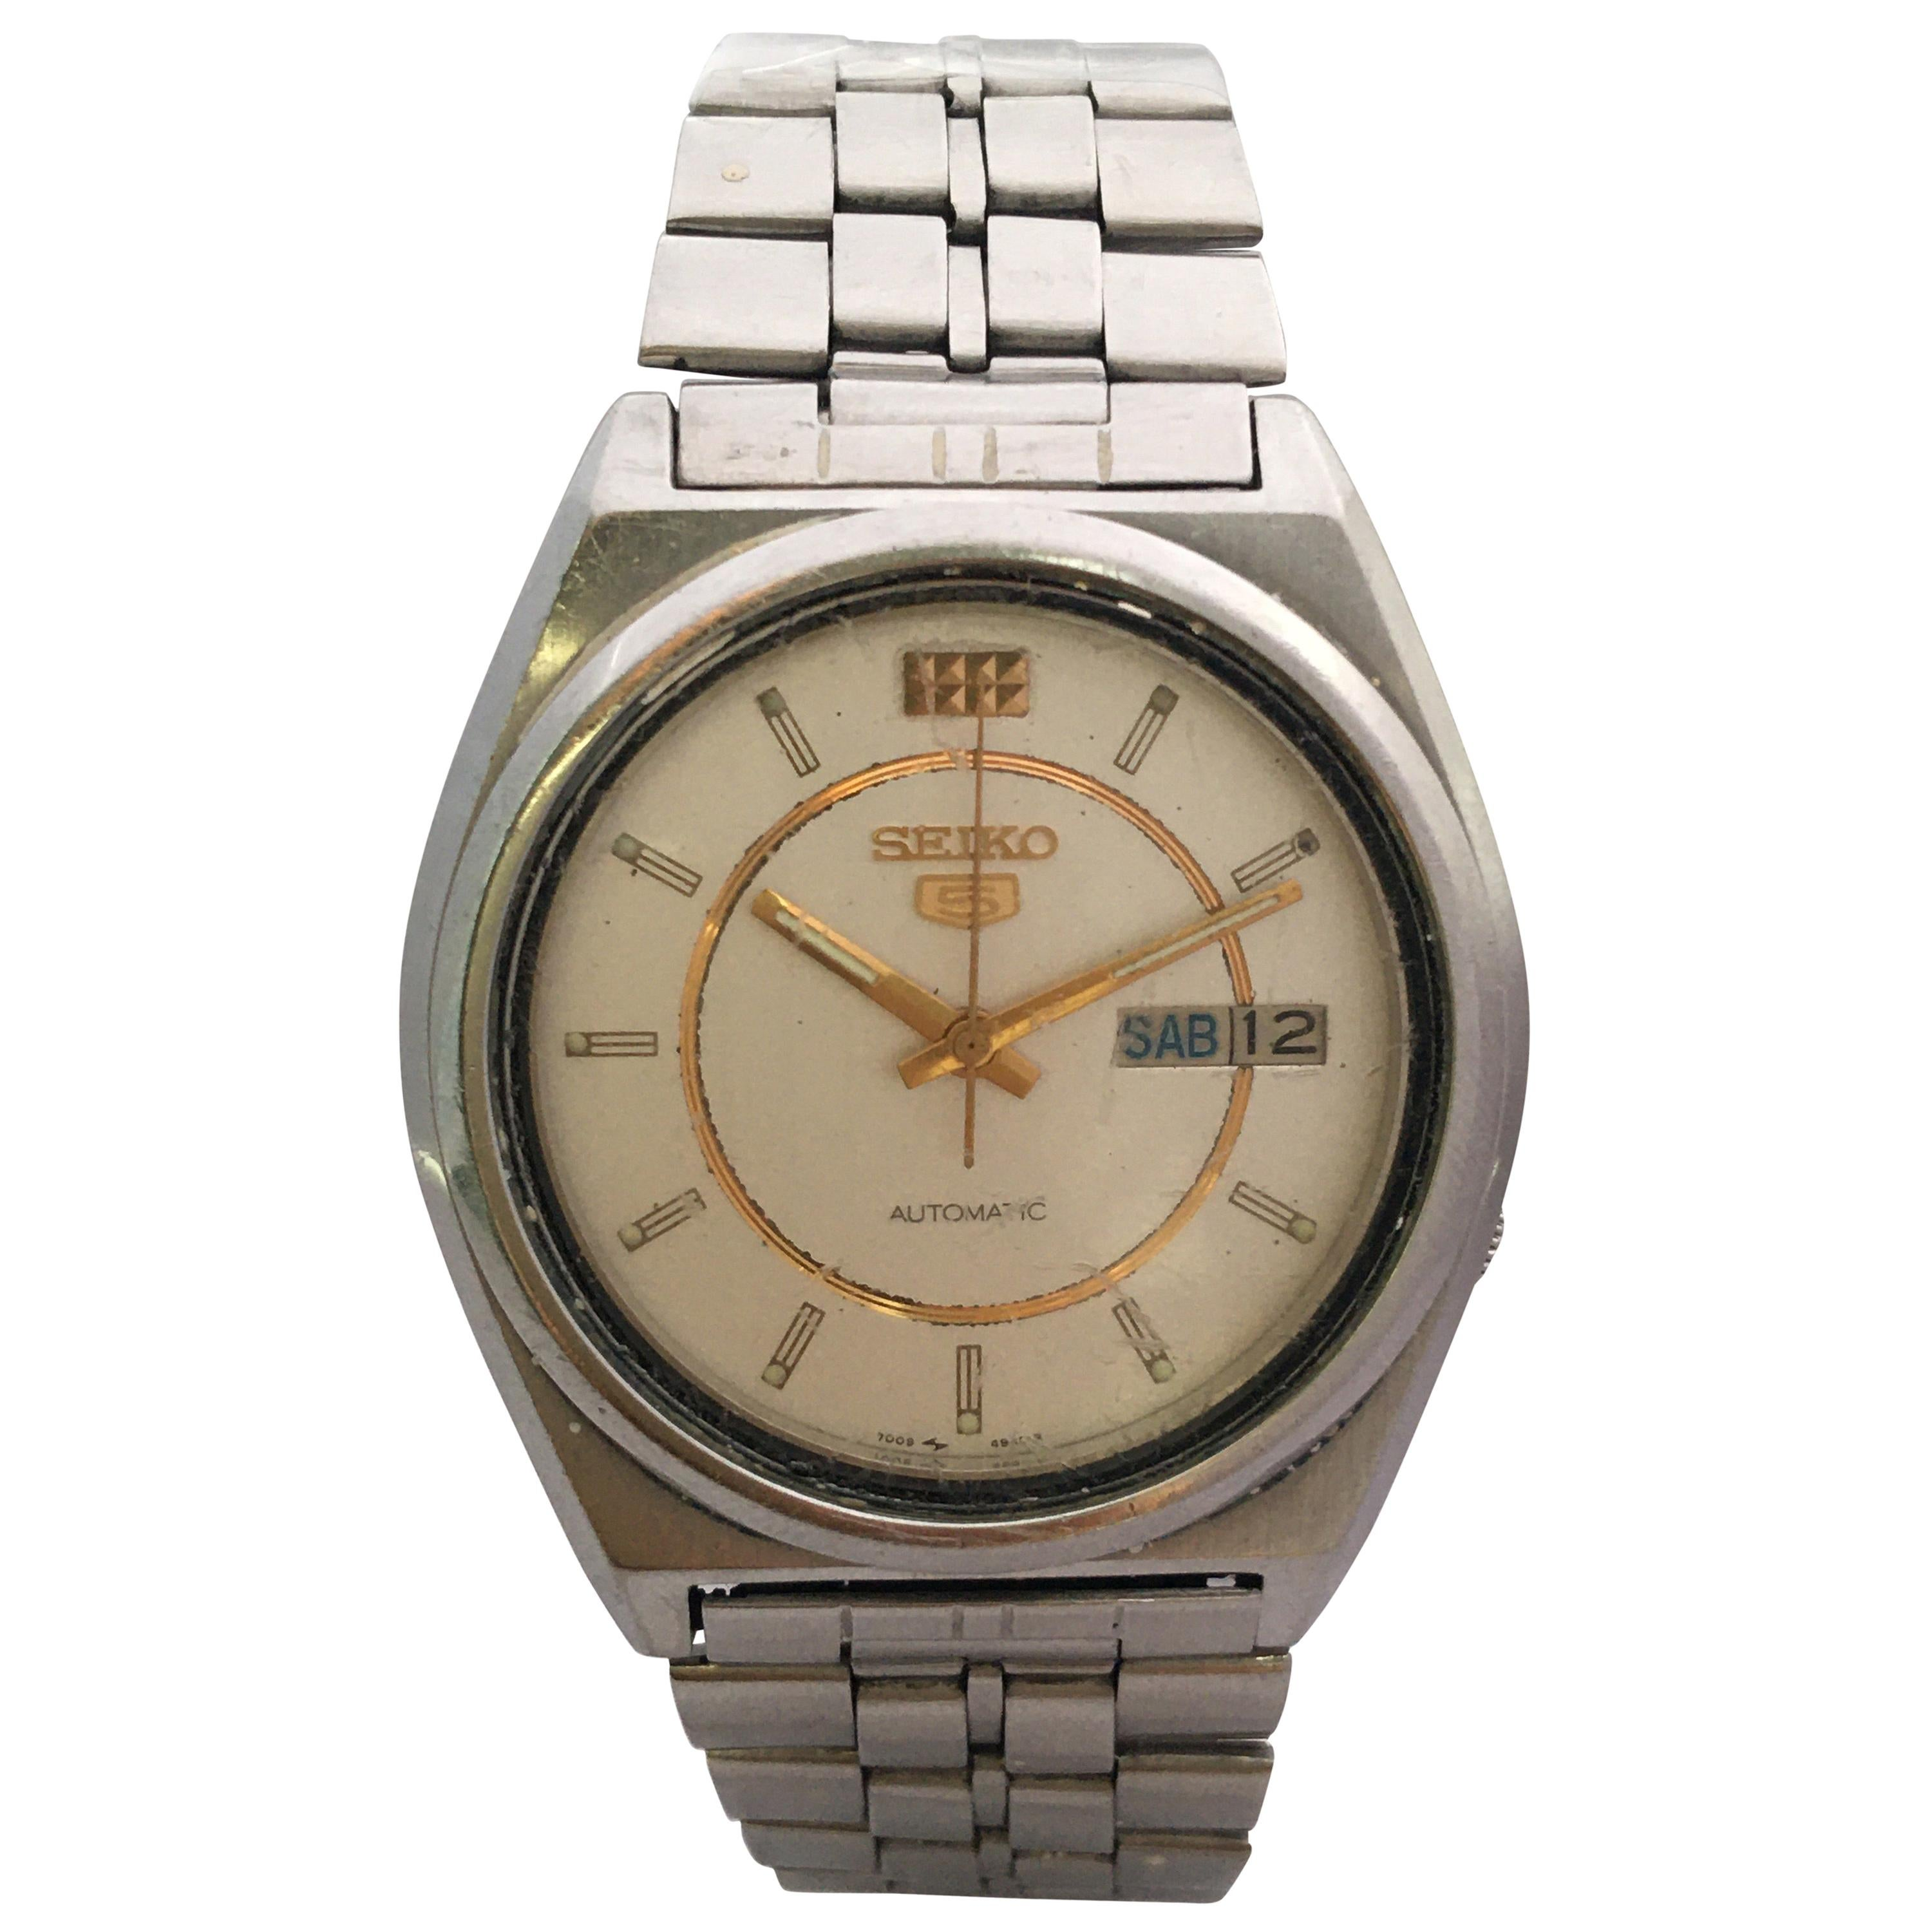 Vintage 1970s Stainless Steel Seiko 5 Automatic Gents Watch